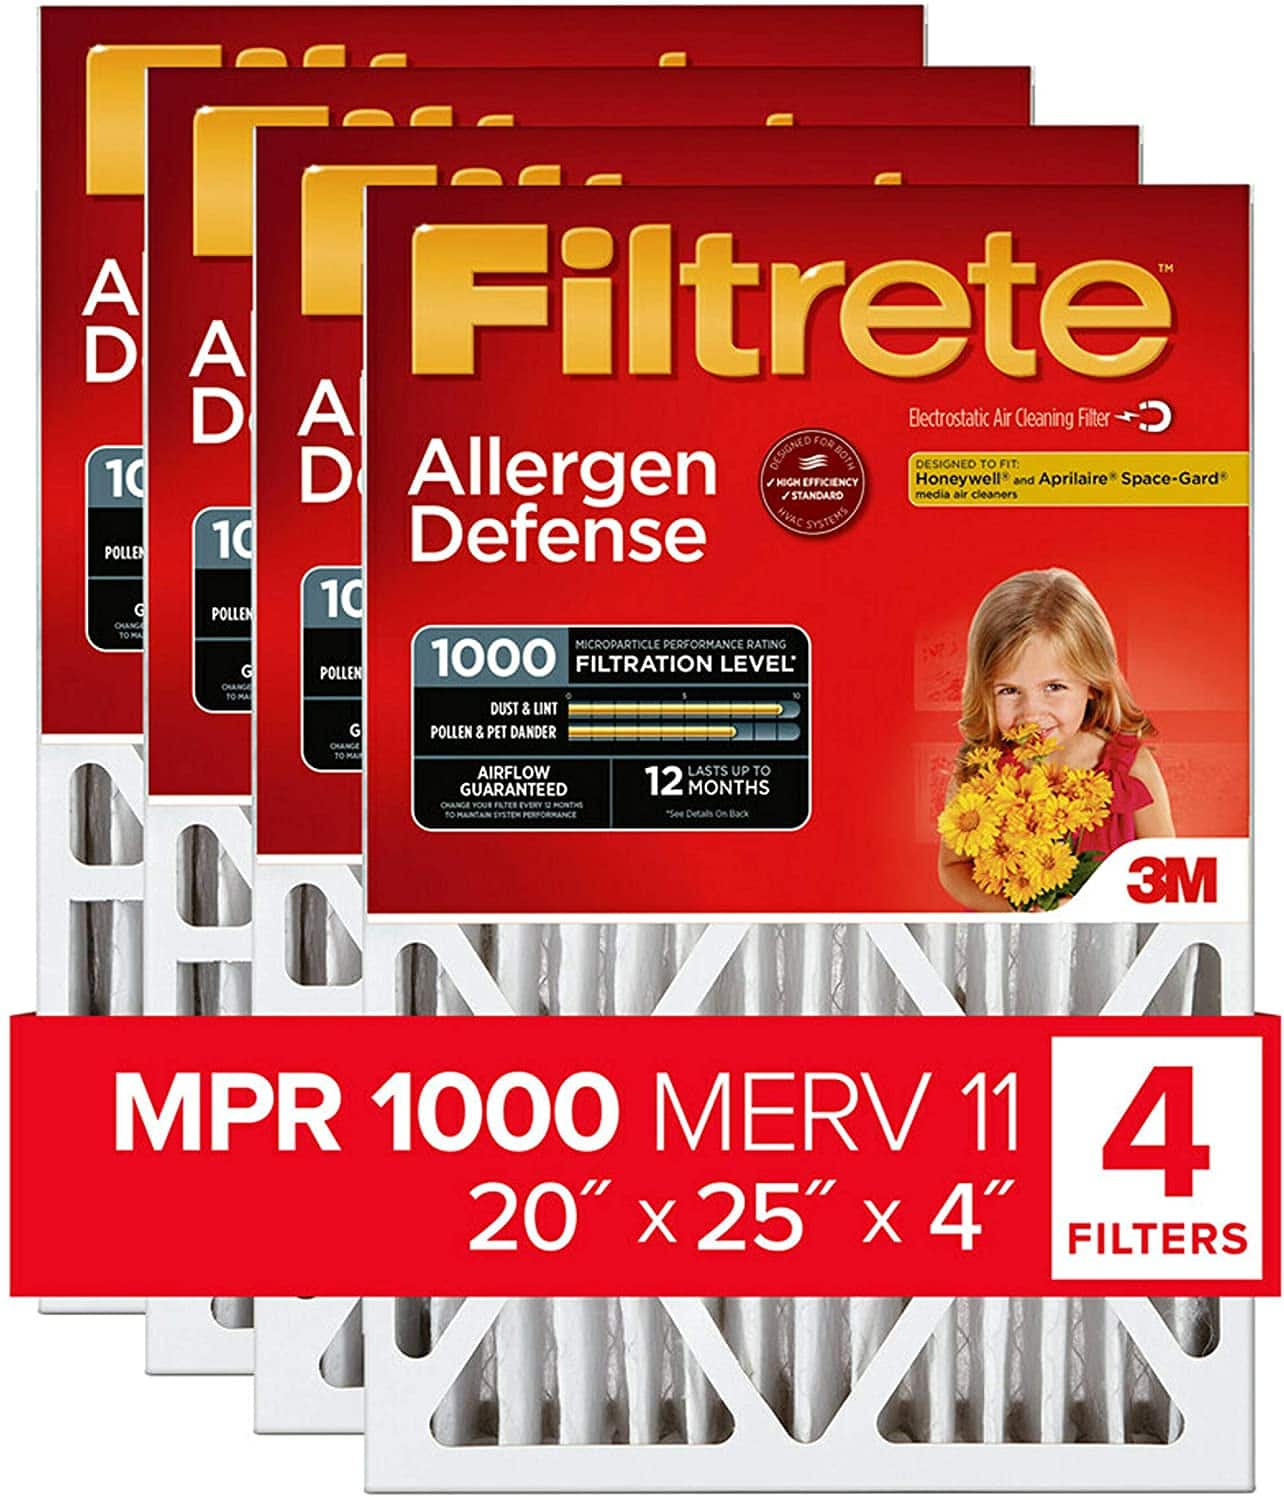 Filtrete 20x25x4, AC Furnace Air Filter, MPR 1000 DP, Micro Allergen Defense Deep Pleat, 4-Pack $72 or 2-Pack $36 (exact dimensions 19.88 x 24.63 x 4.2) Amazon S&S